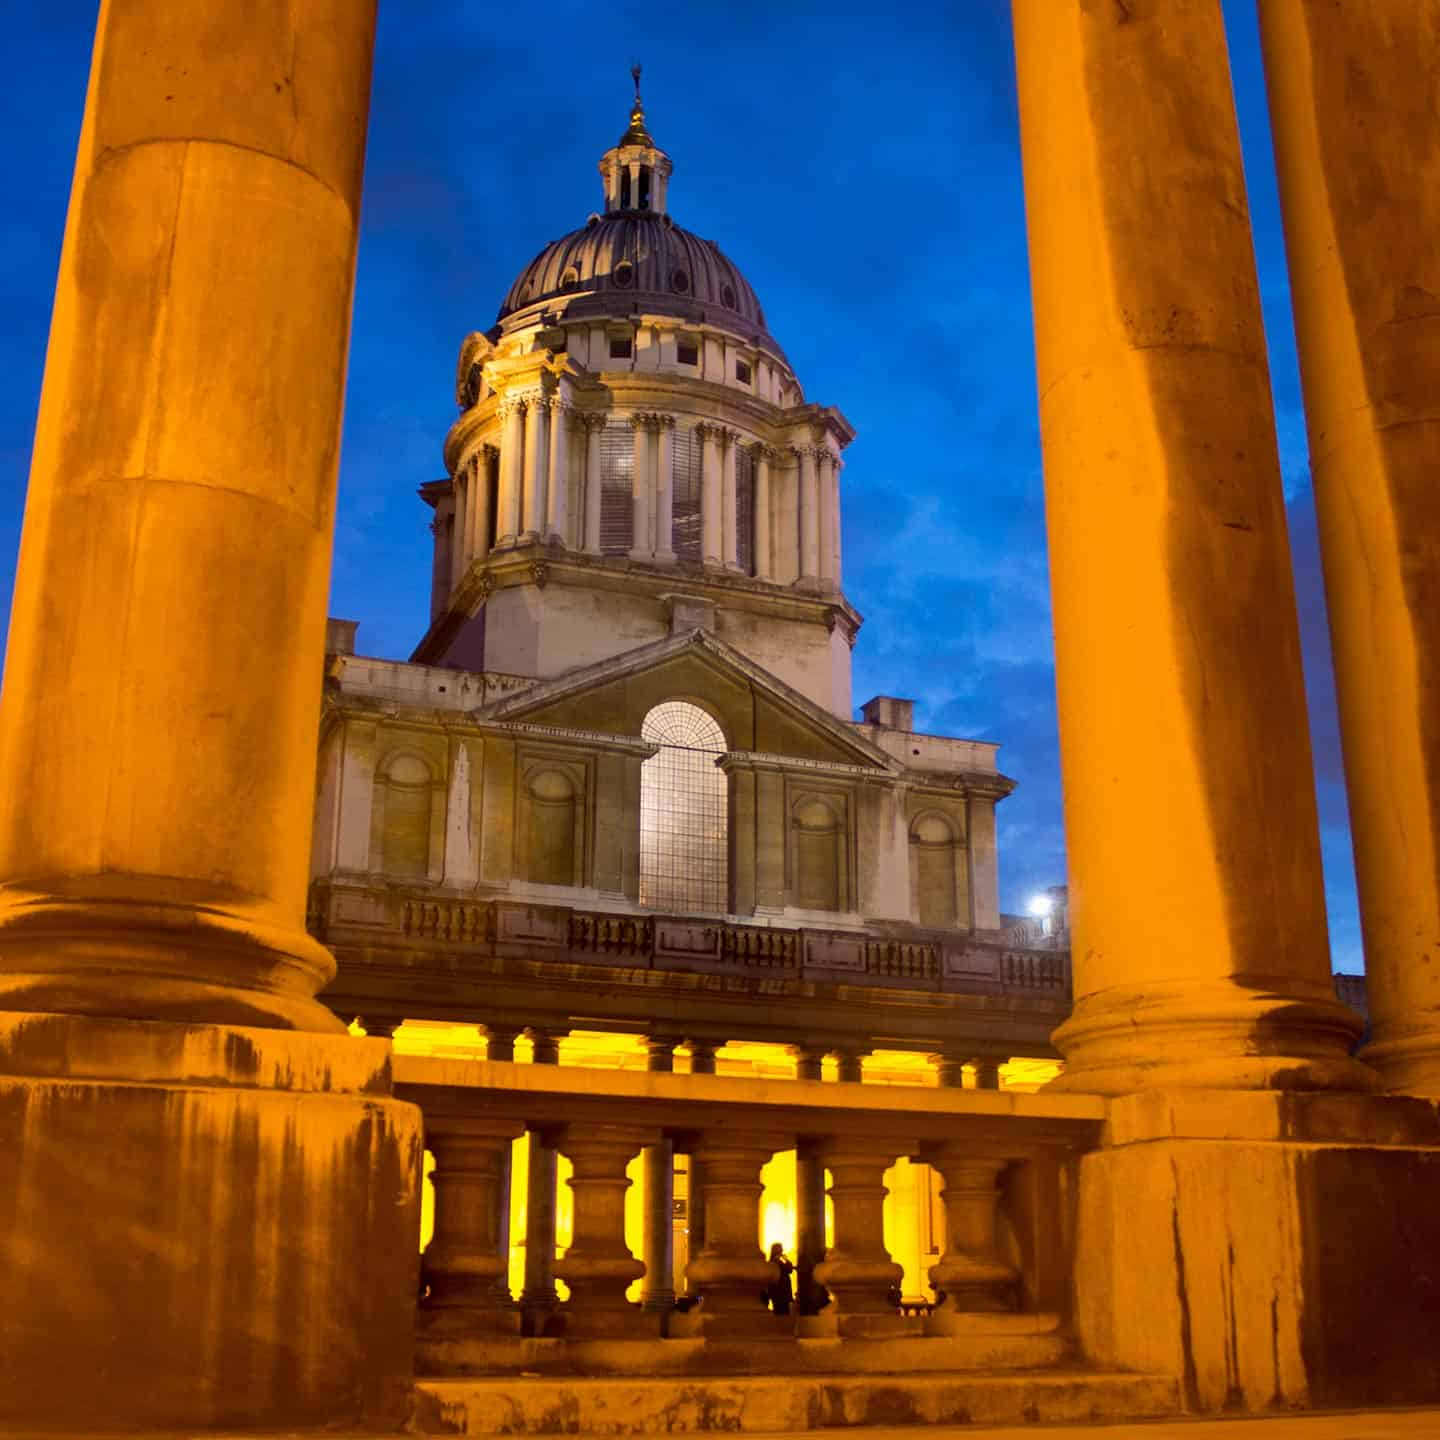 Image of the Old Royal Naval College in Greenwich, London